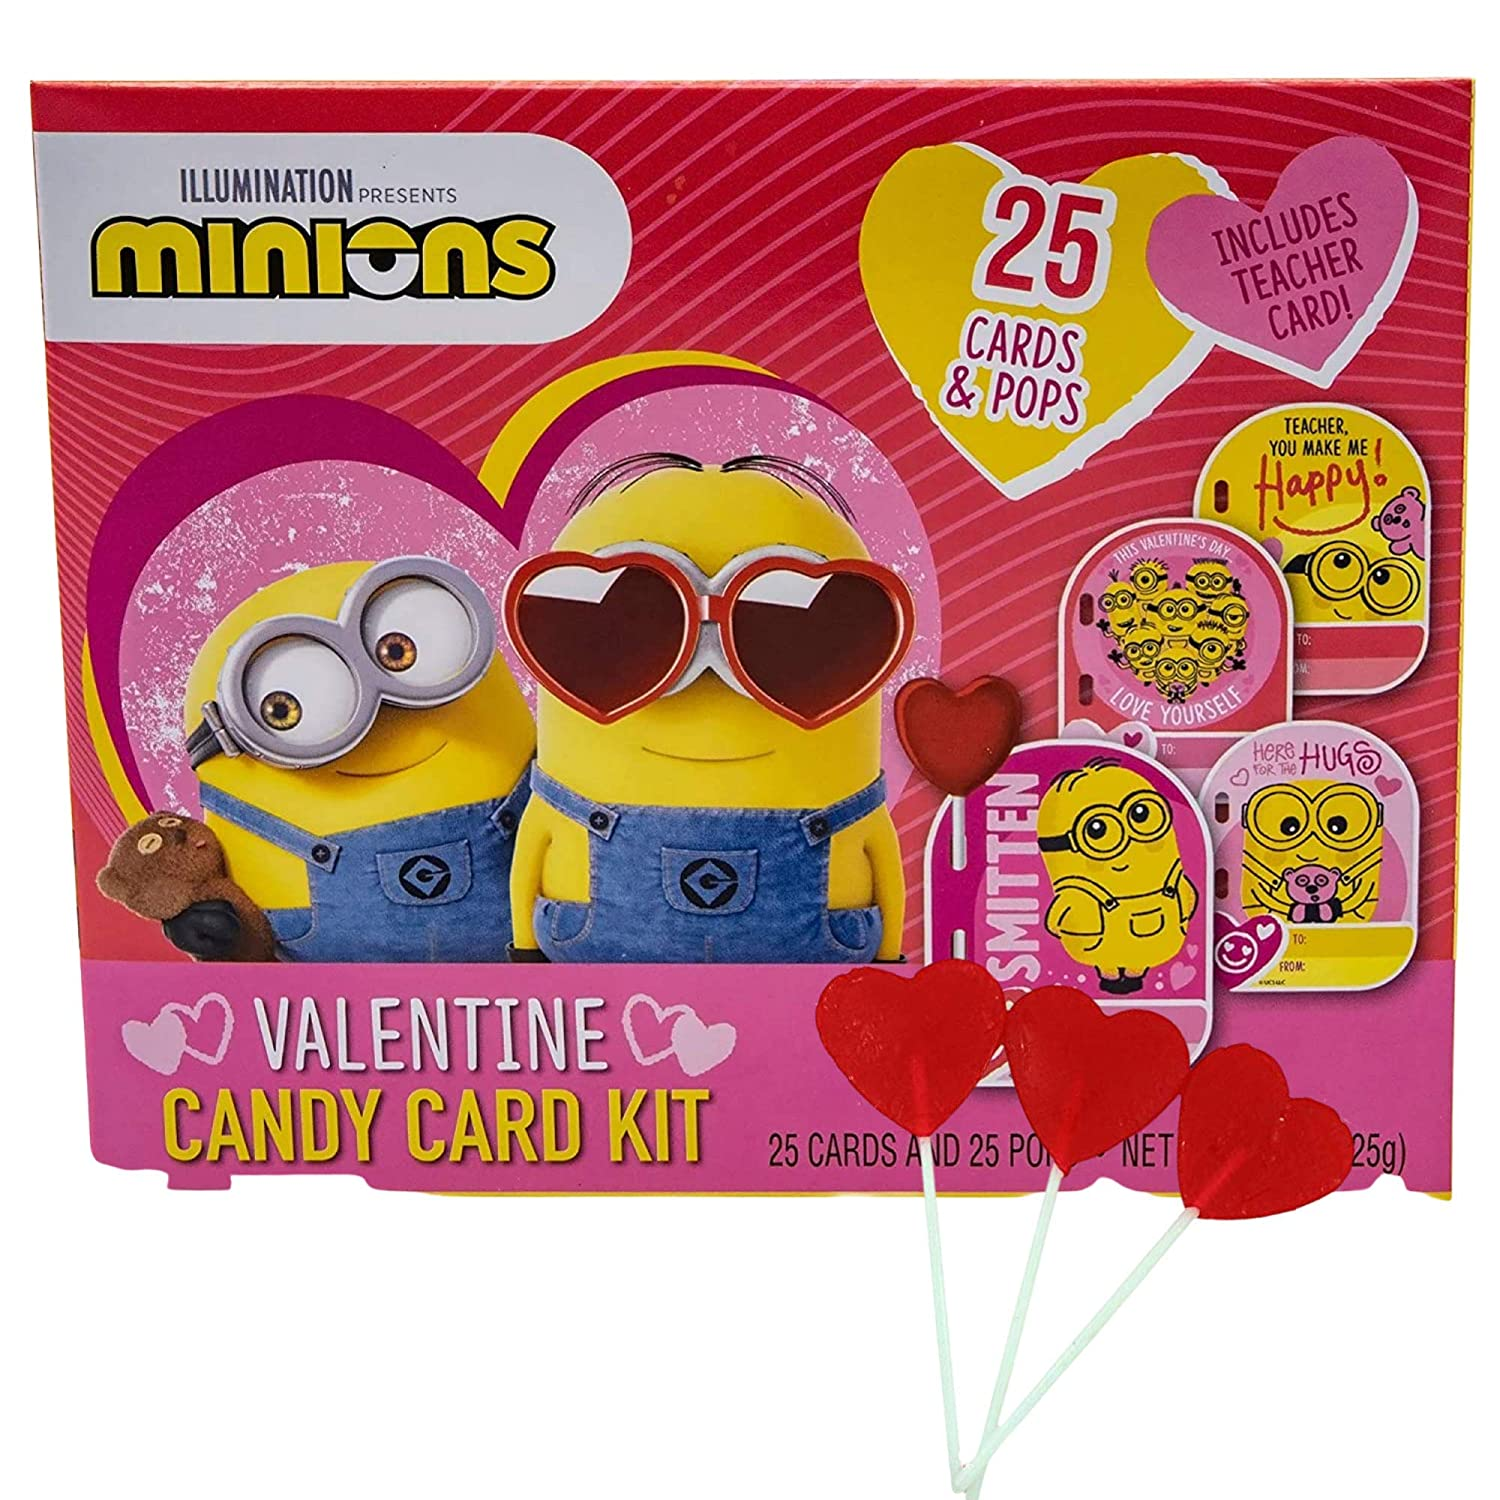 Minions Valentine's Day Card Max 72% OFF All items free shipping and Candy Classroom Exchang Kit for